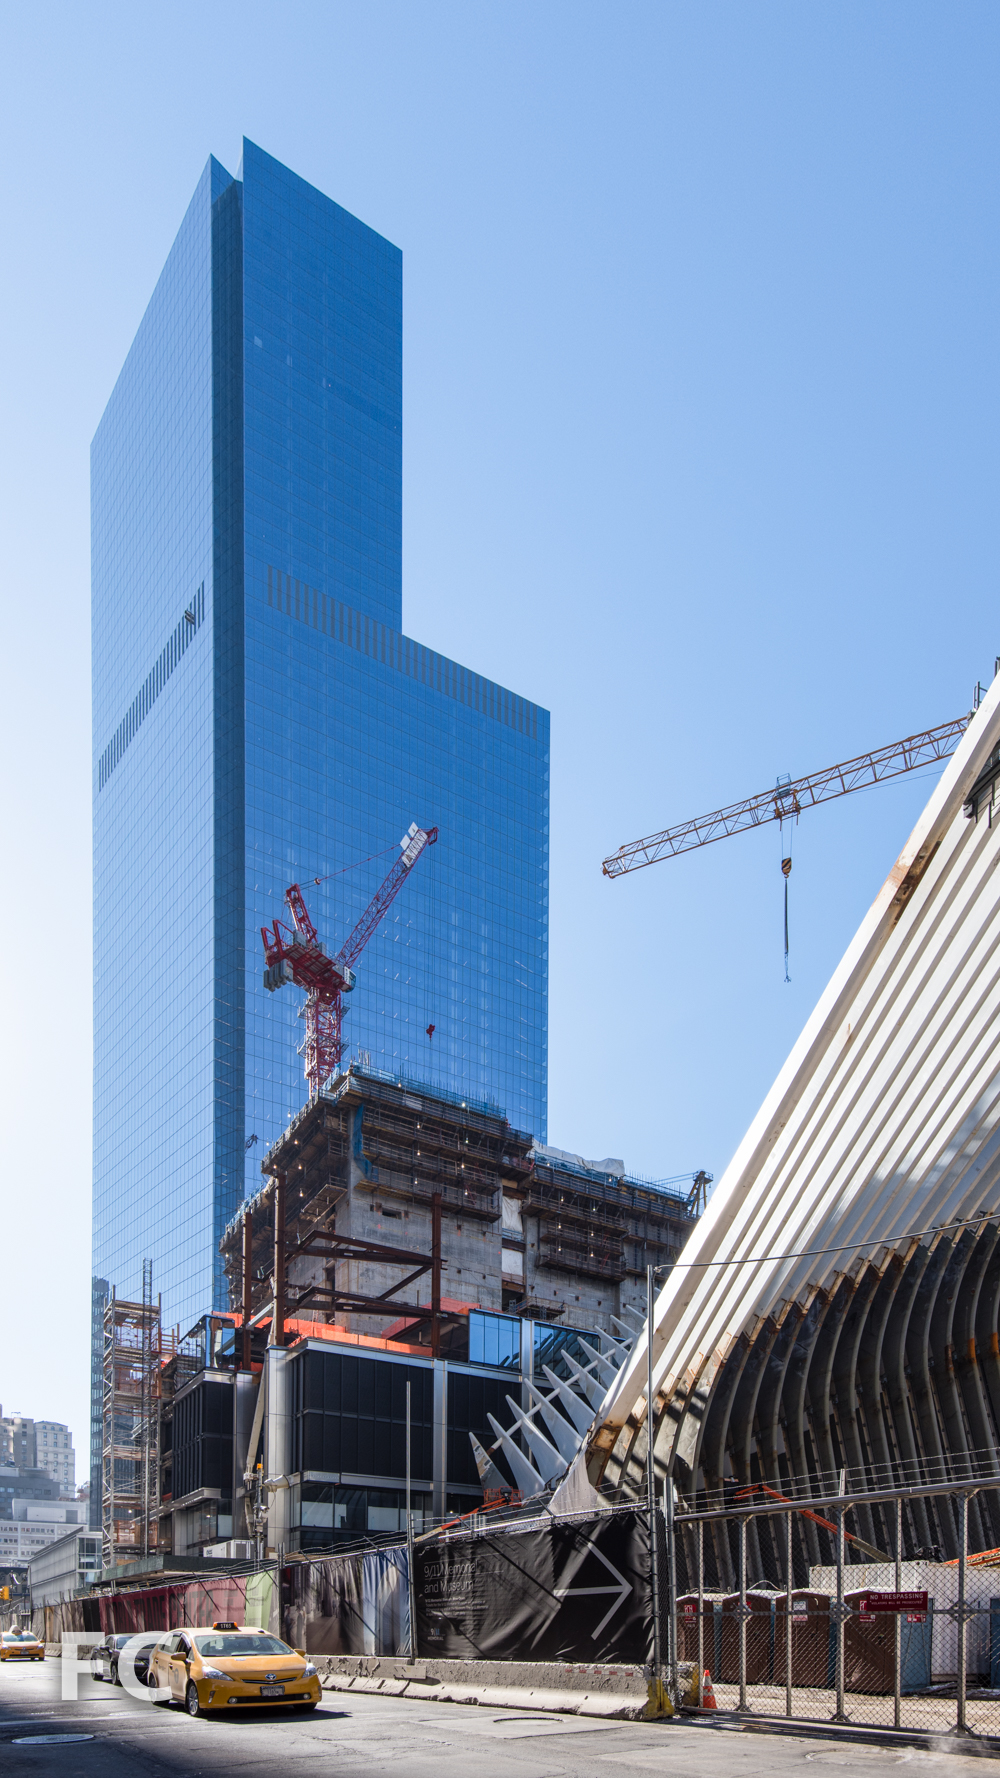 World Trade Center Transit Hub (right), 3 World Trade Center (center), and 4 World Trade Center (left) from Church Street.